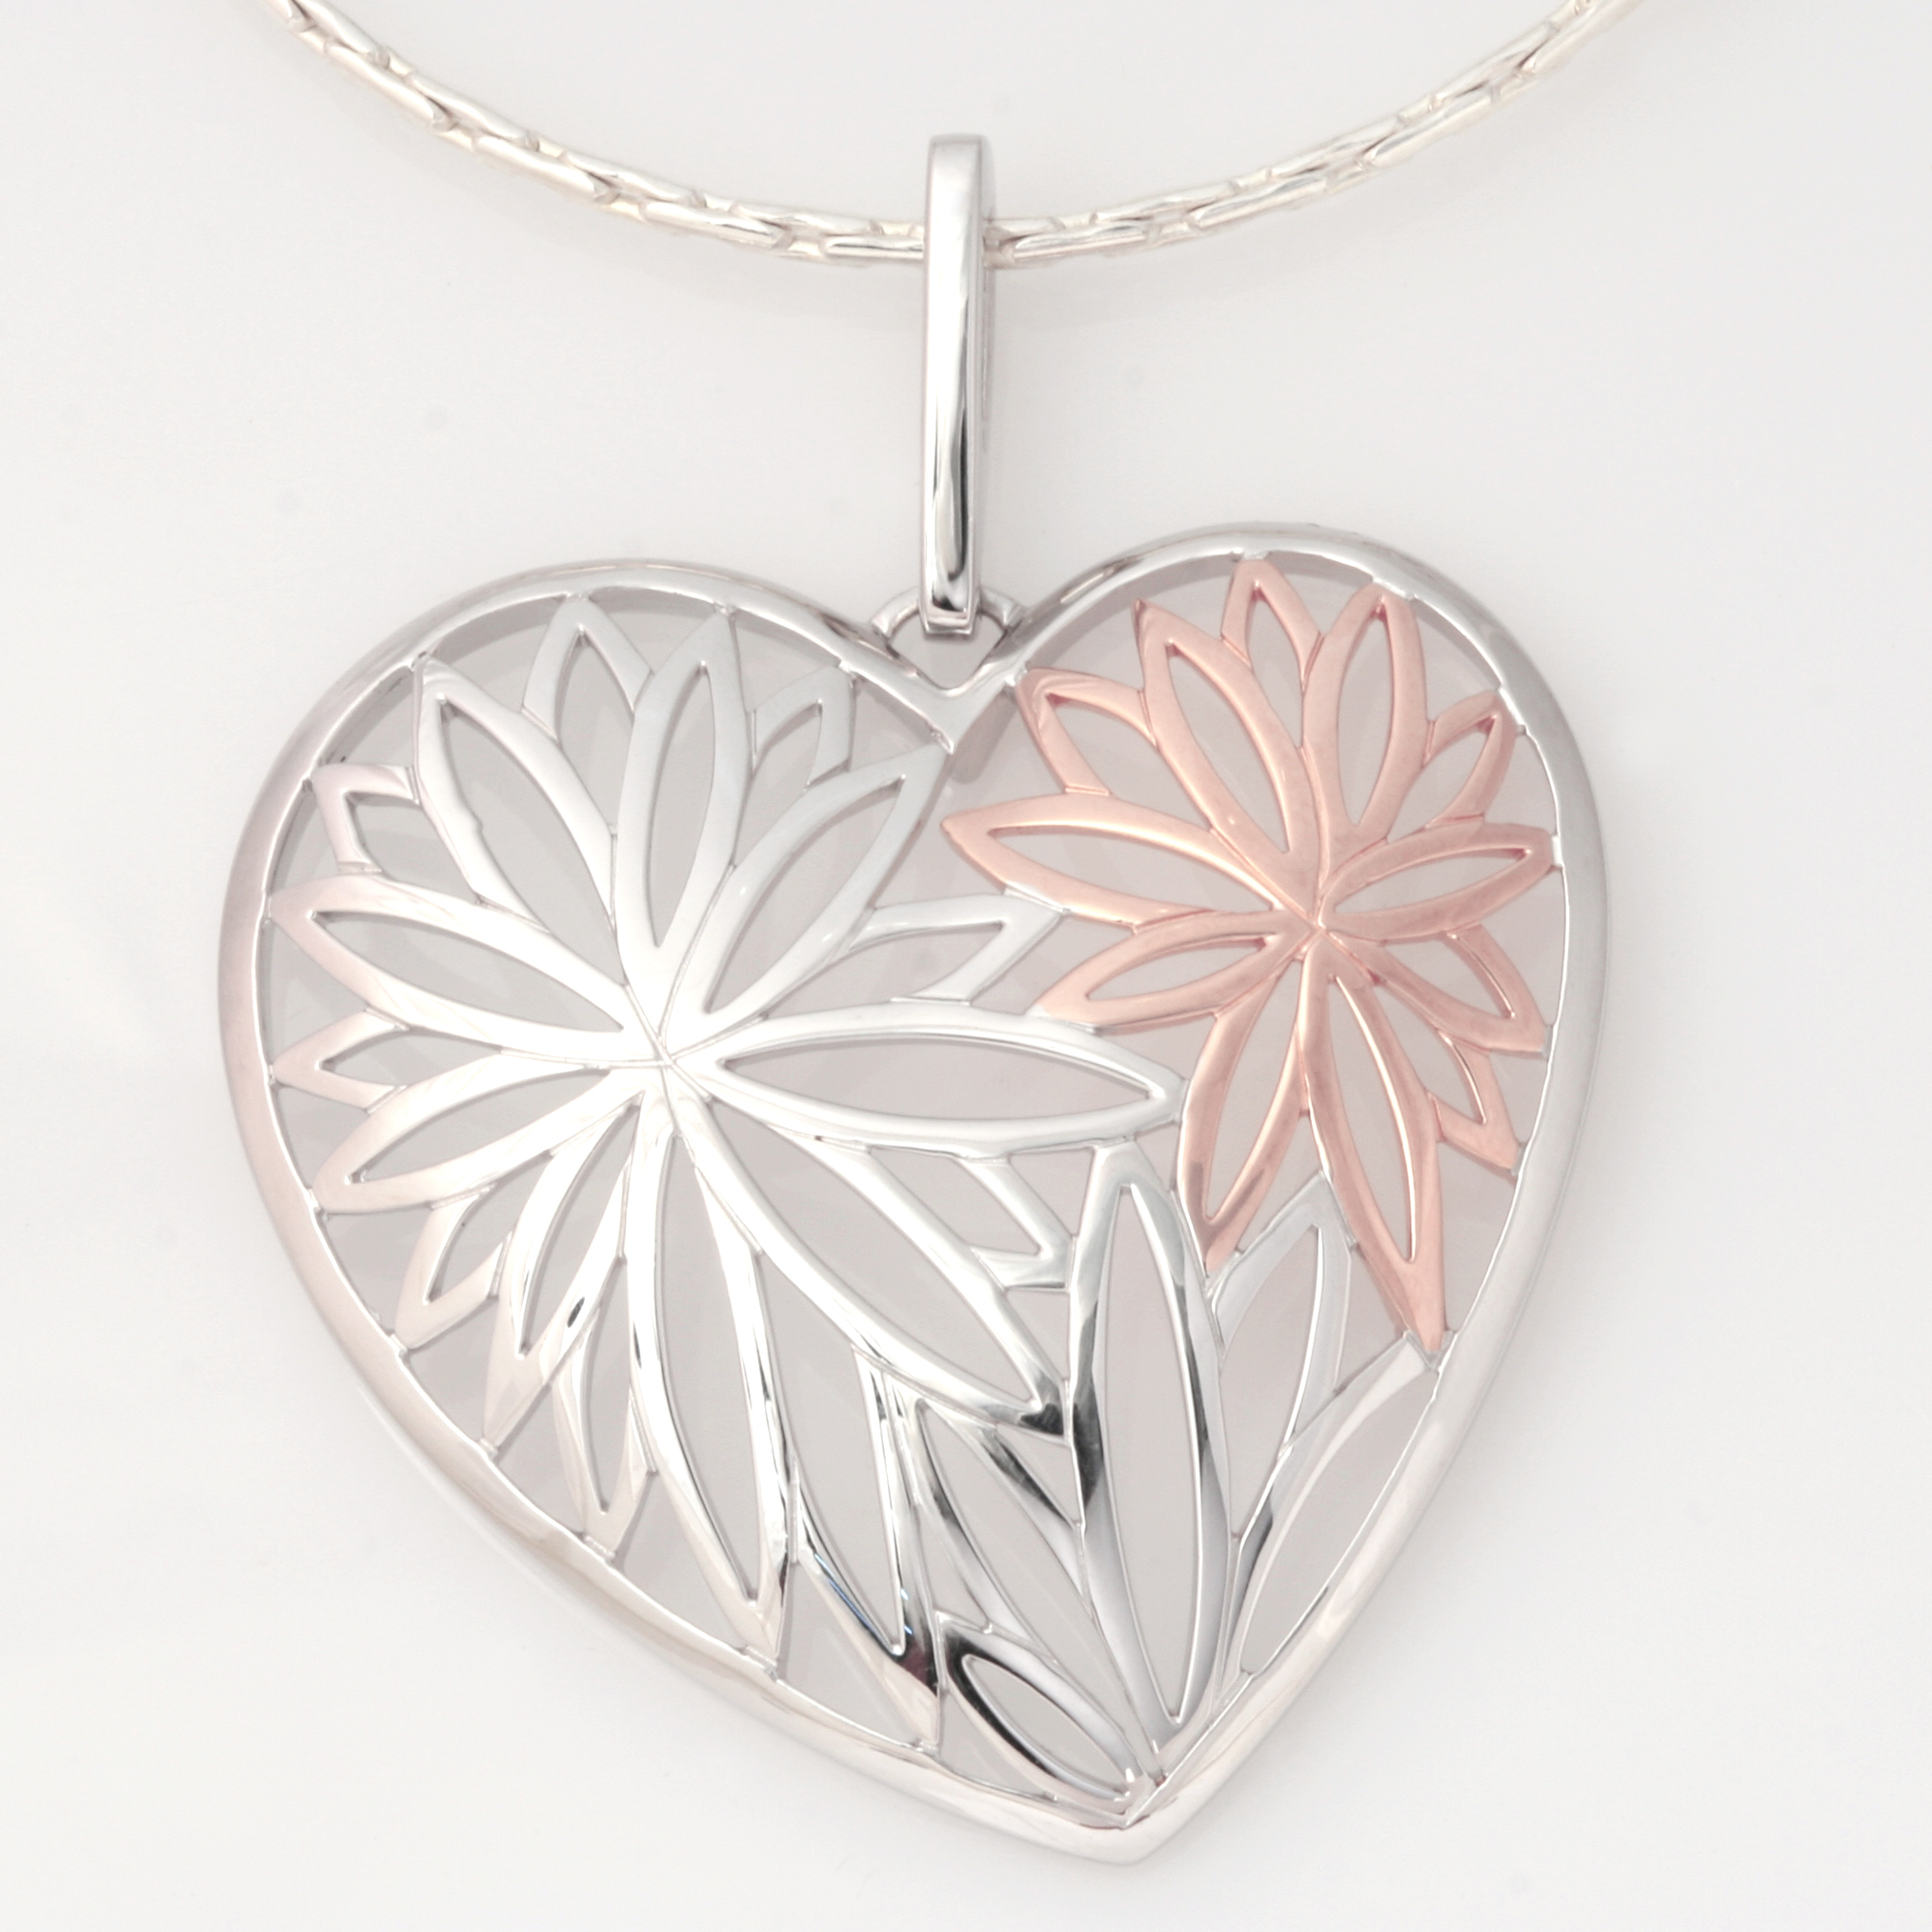 P101 Sterling silver rhodium and rose gold plate heart flower pendant only. $210